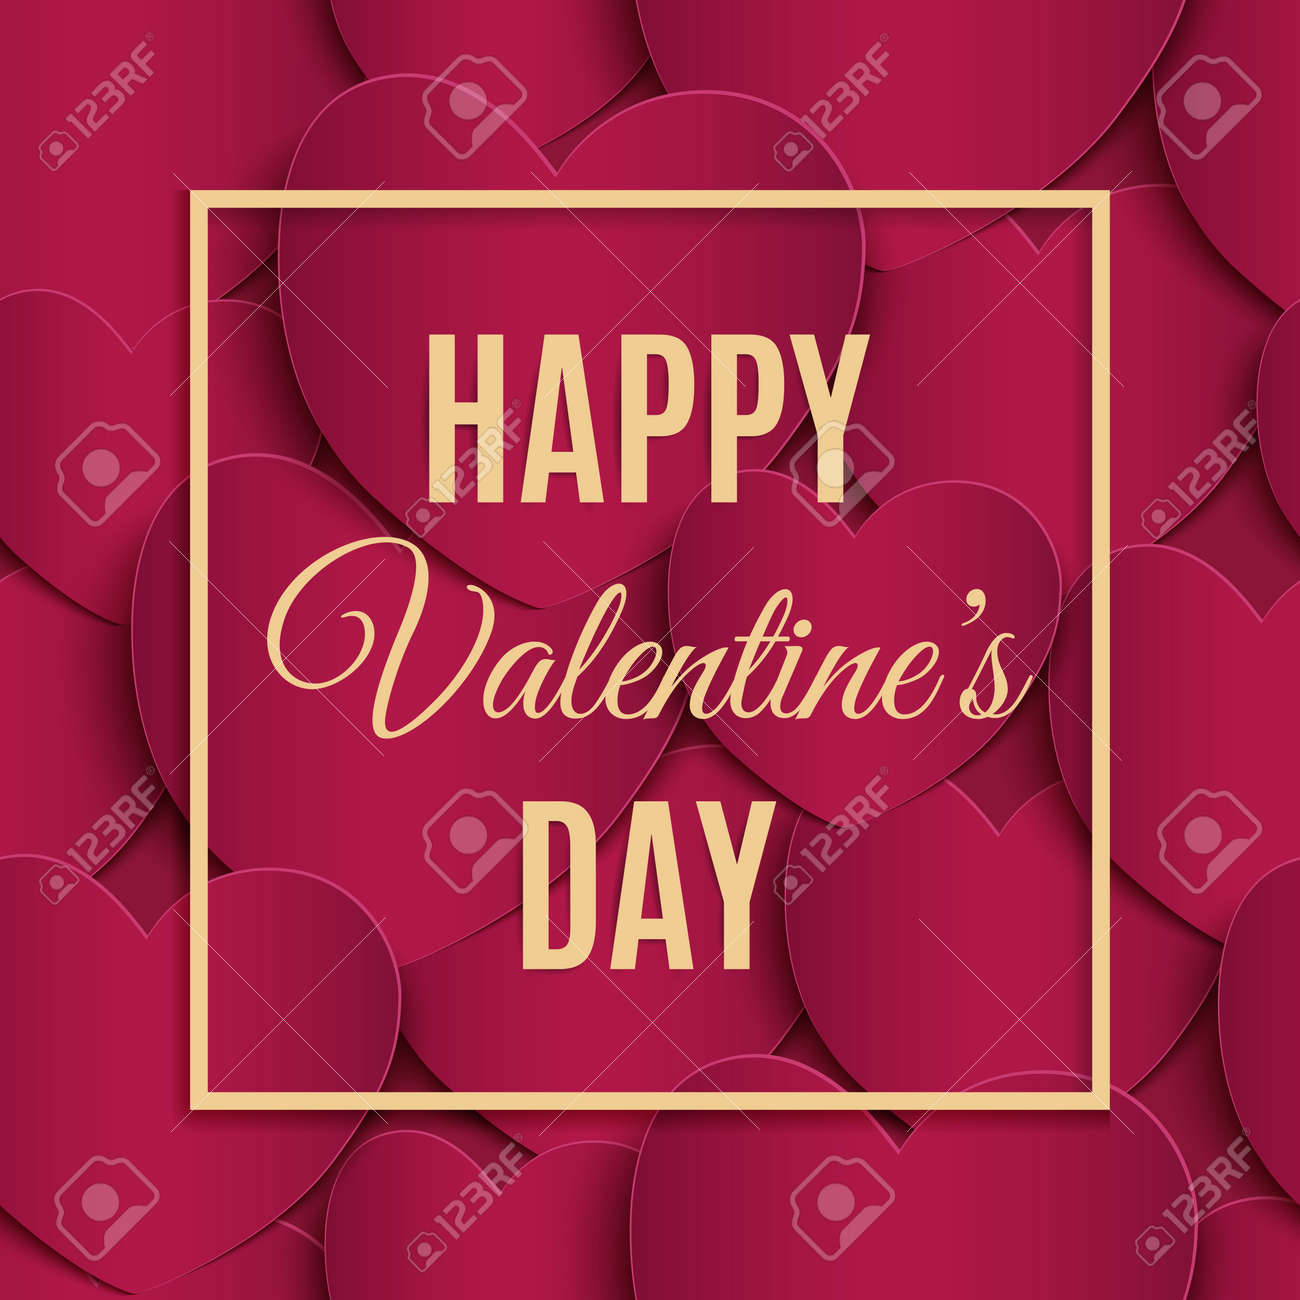 Happy Valentines Day greeting card template. - 70034744